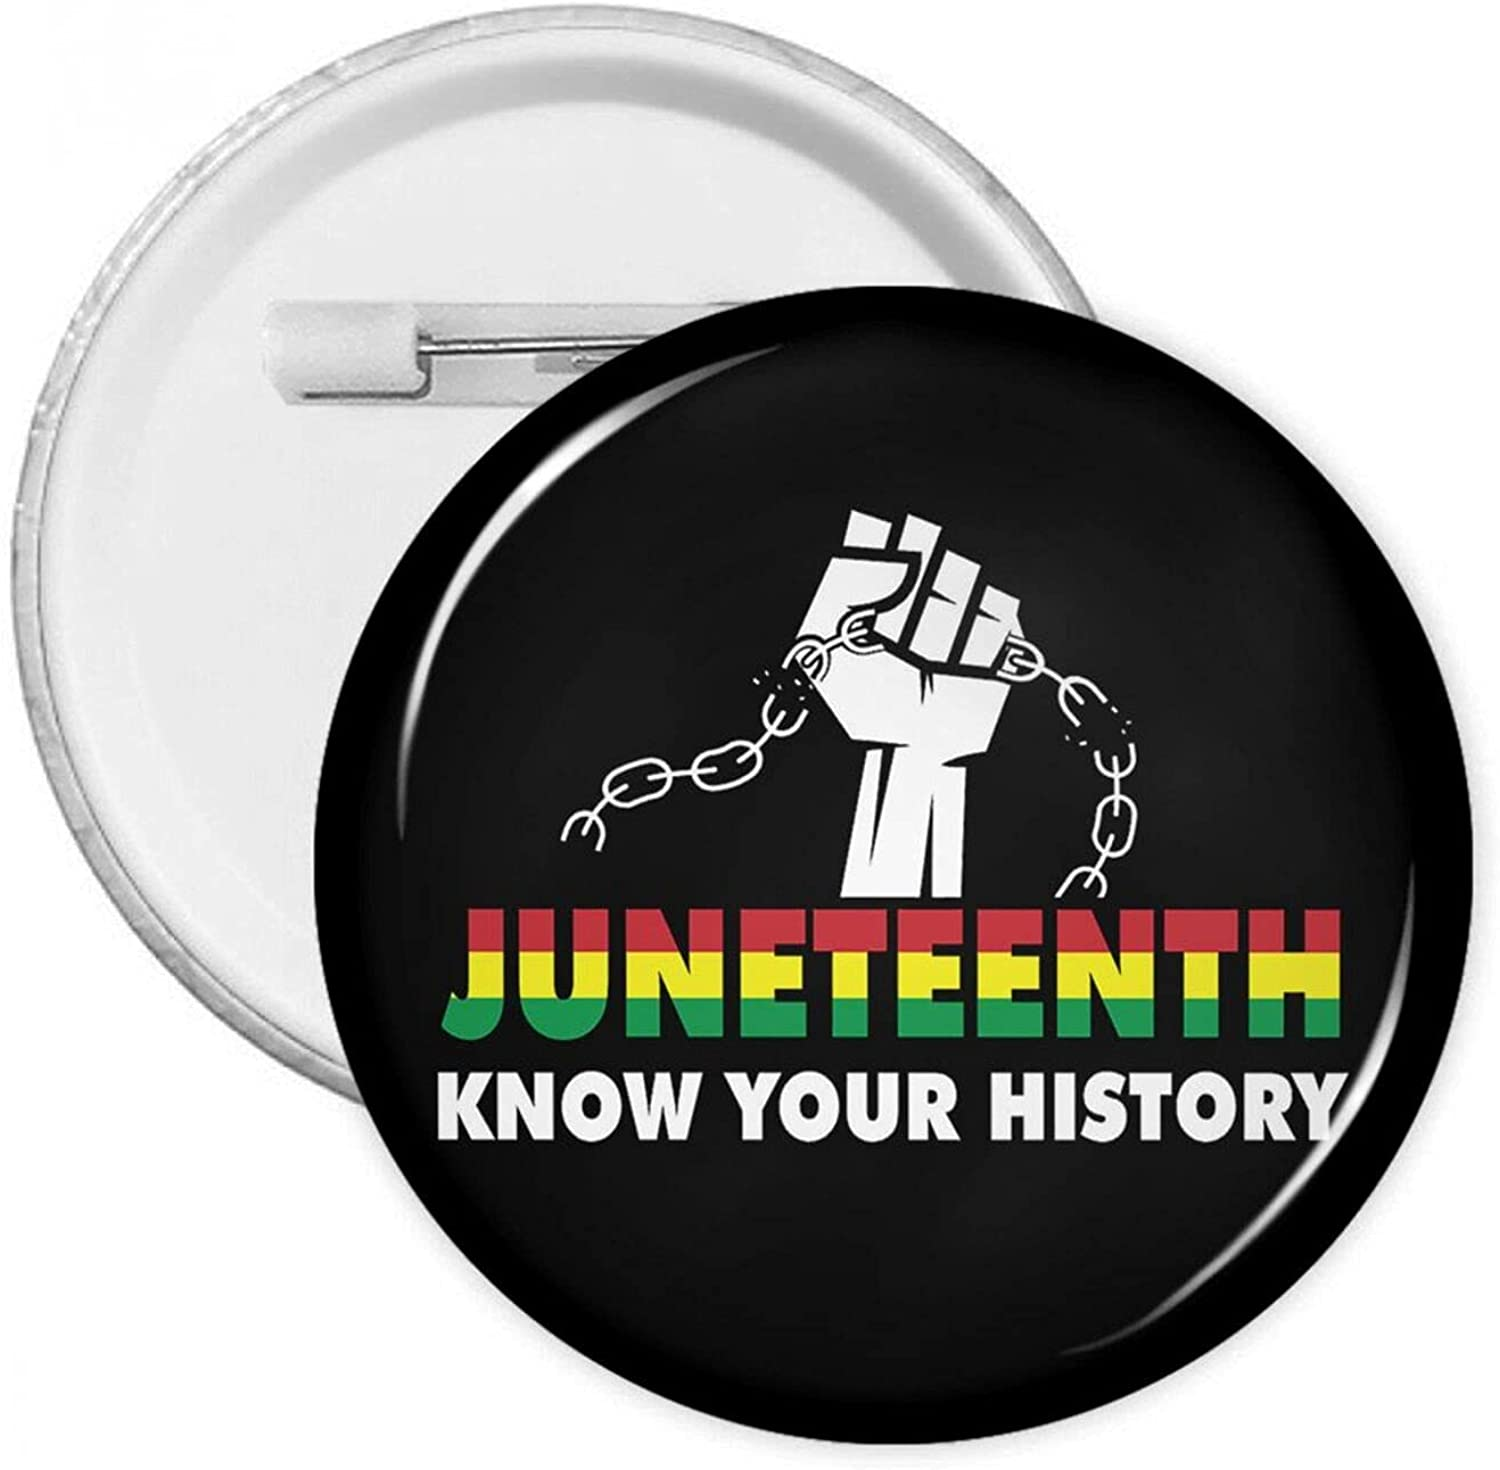 Juneteenth Black History Pin Buttons Round Badges Brooch Lapel Pin